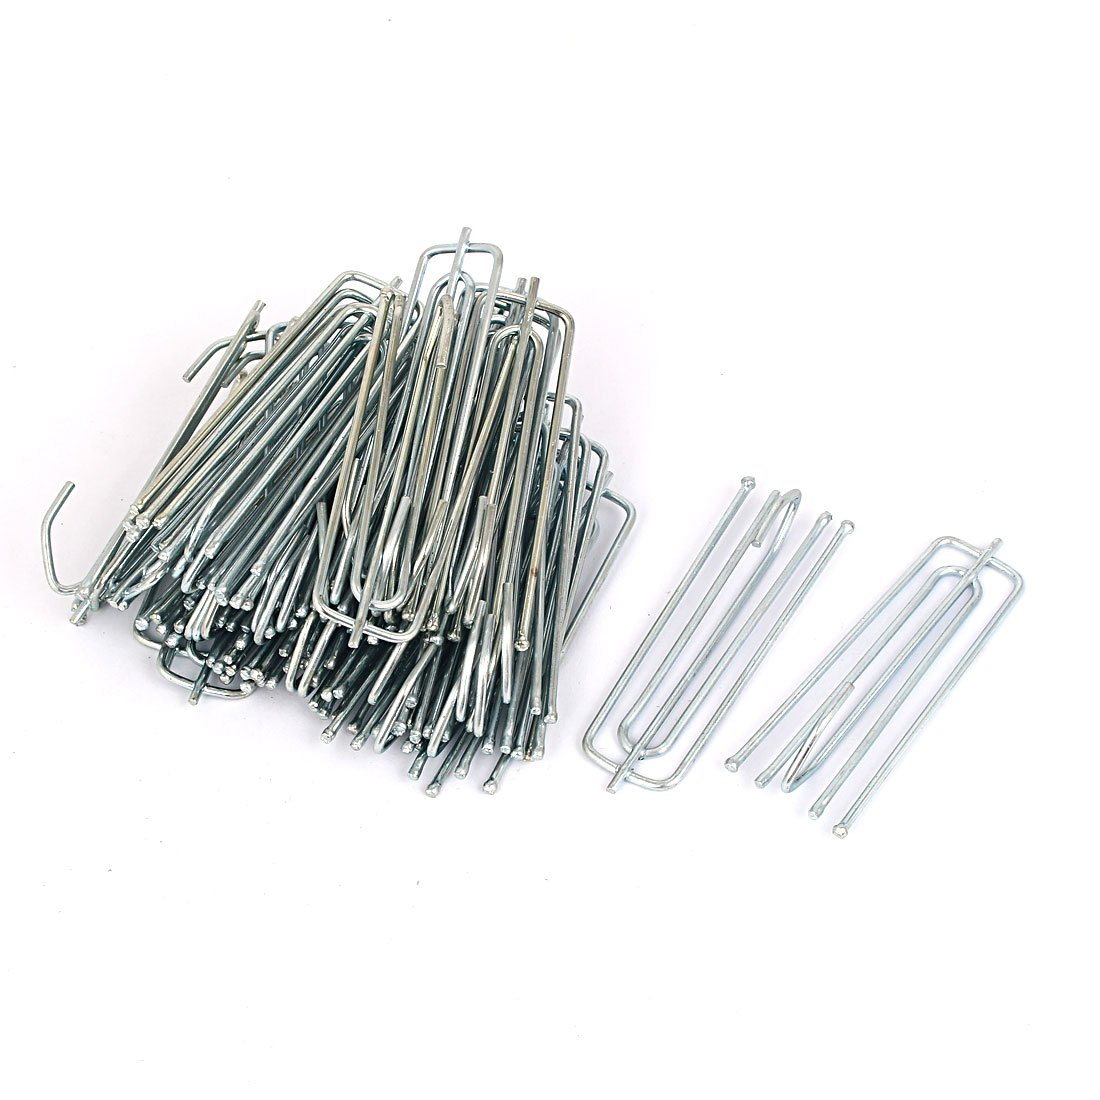 uxcell 70mm Long 4-Prong Metal Pinch Pleat Curtain Hooks Silver Blue 35pcs a16032900ux0831